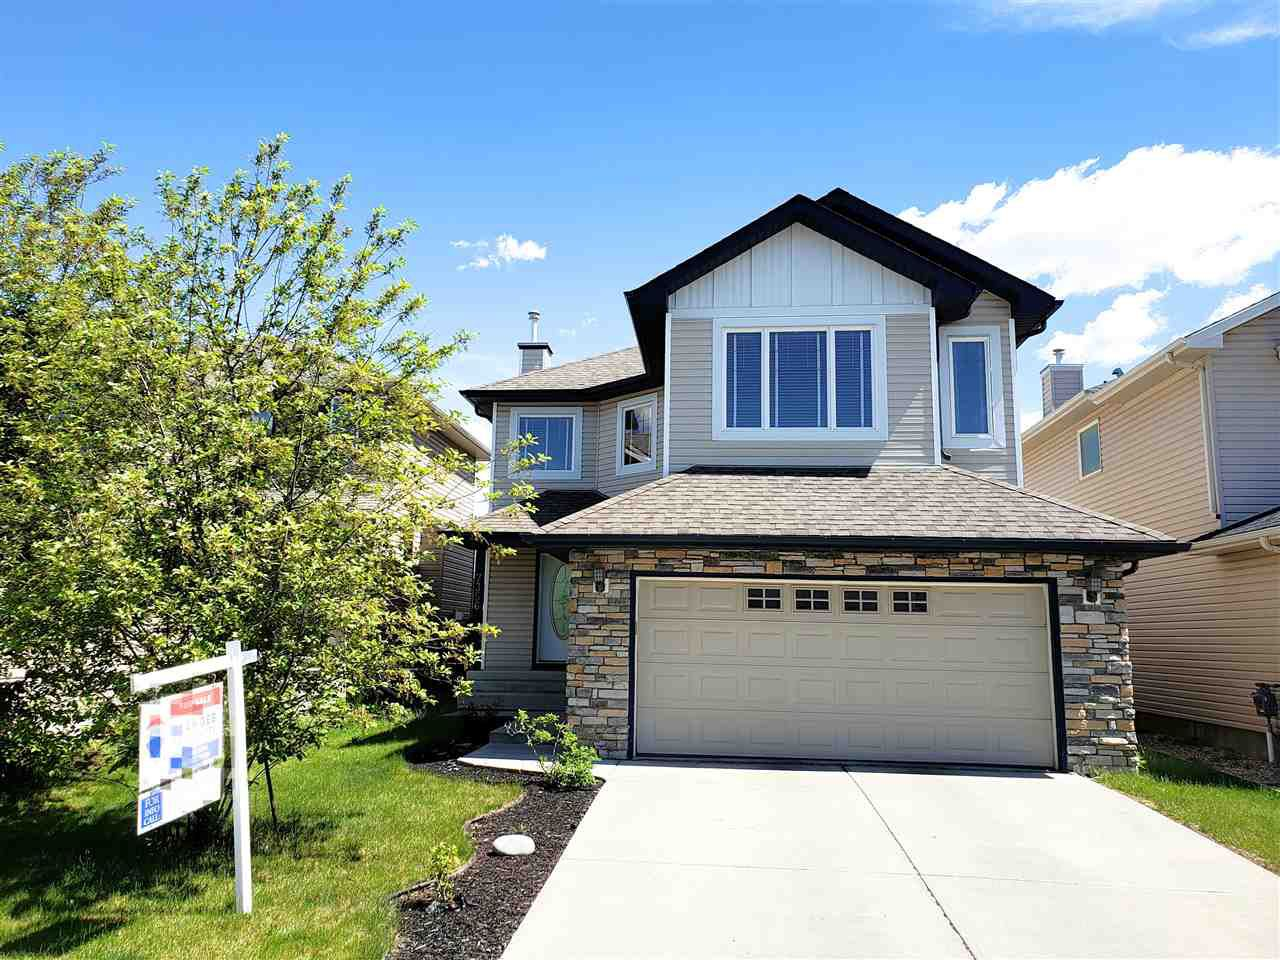 Main Photo: 7356 SINGER Way in Edmonton: Zone 14 House for sale : MLS®# E4146744